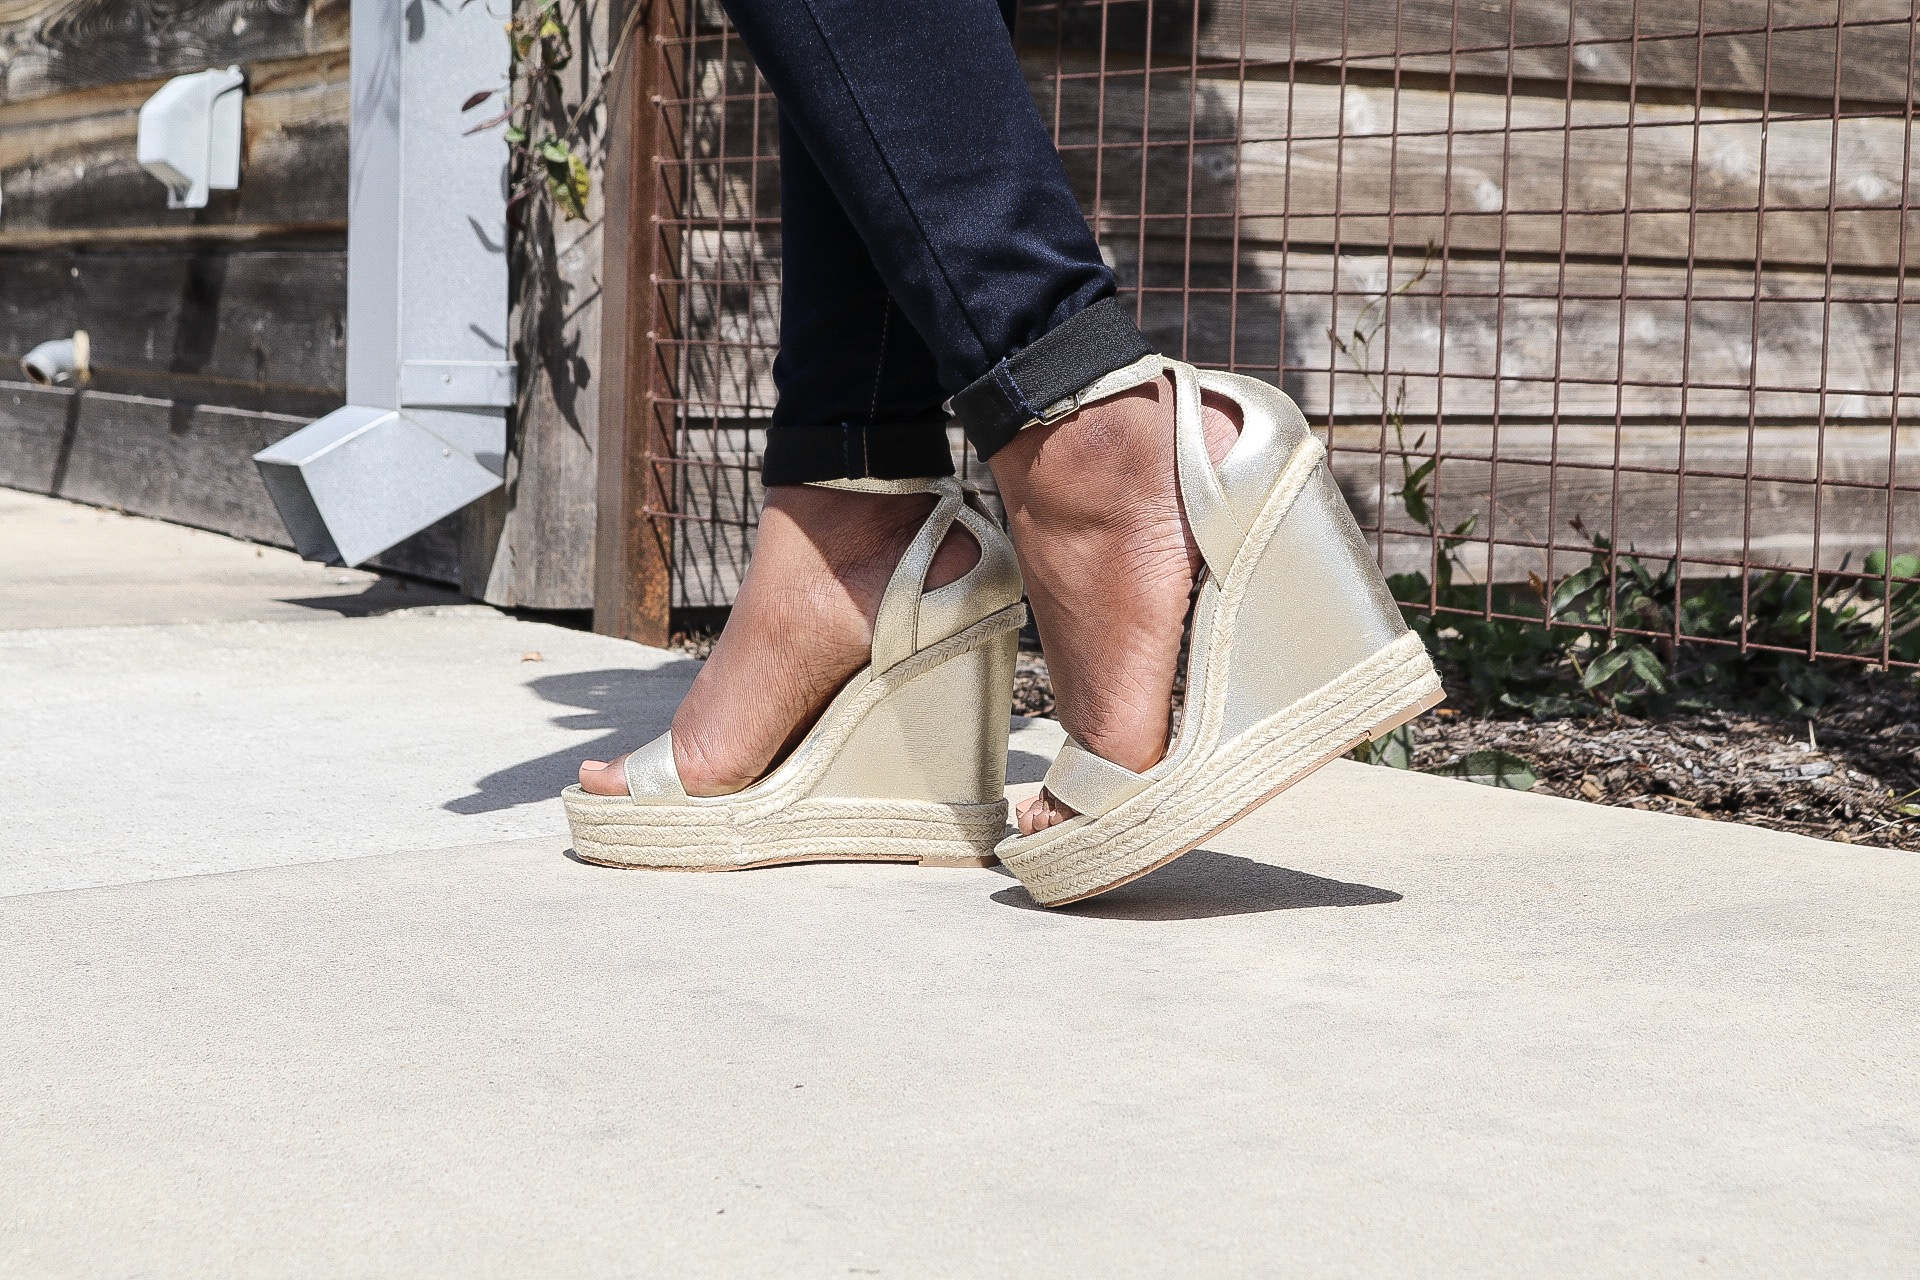 These Badgley Mischka wedges are the cutest with touches of metallic -- literally can be styled with tons of outfits!